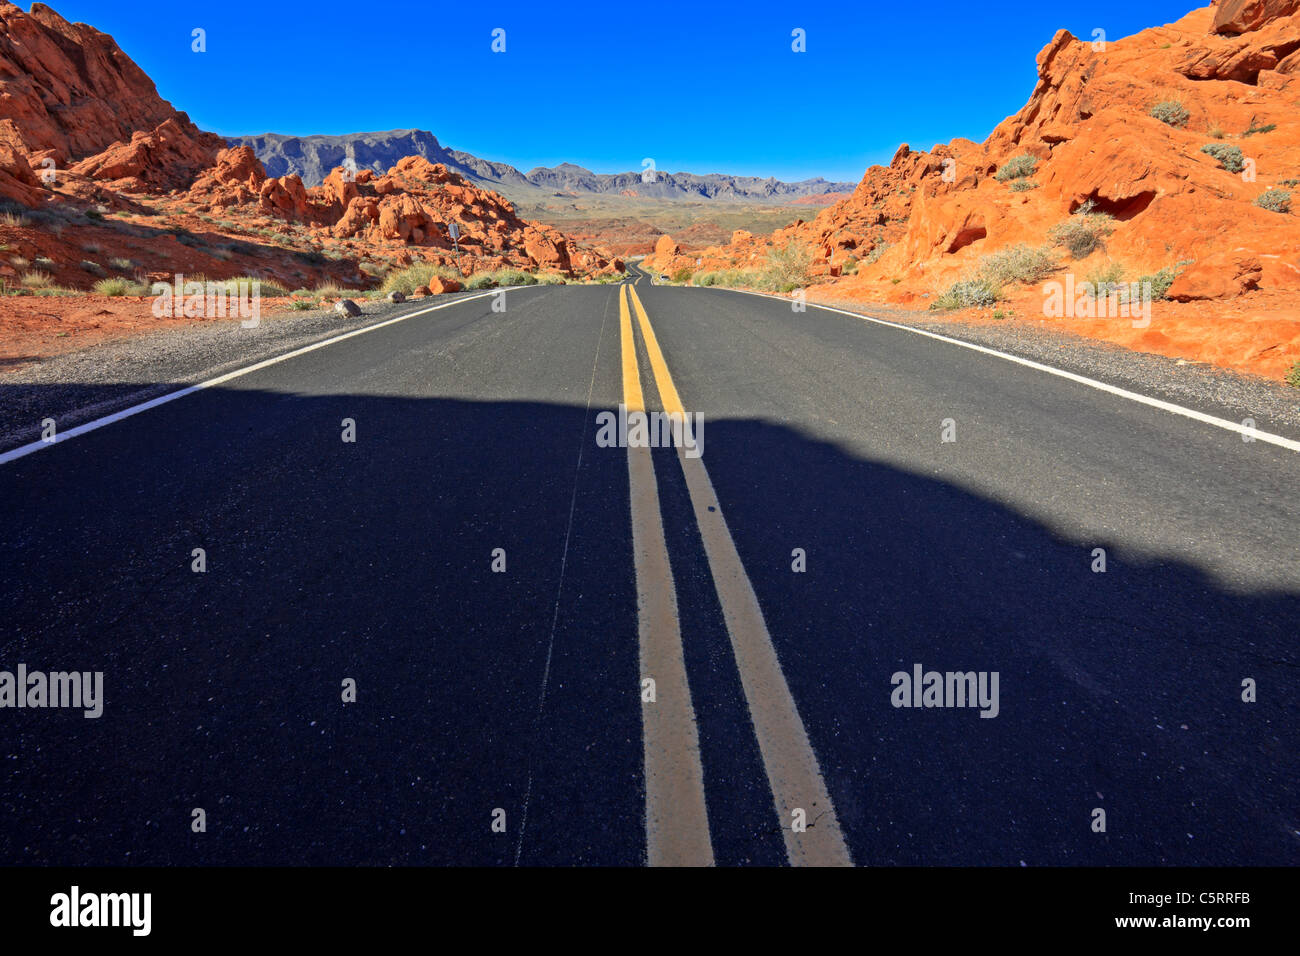 Desert road in Valley of Fire State Park, Nevada, USA Stock Photo